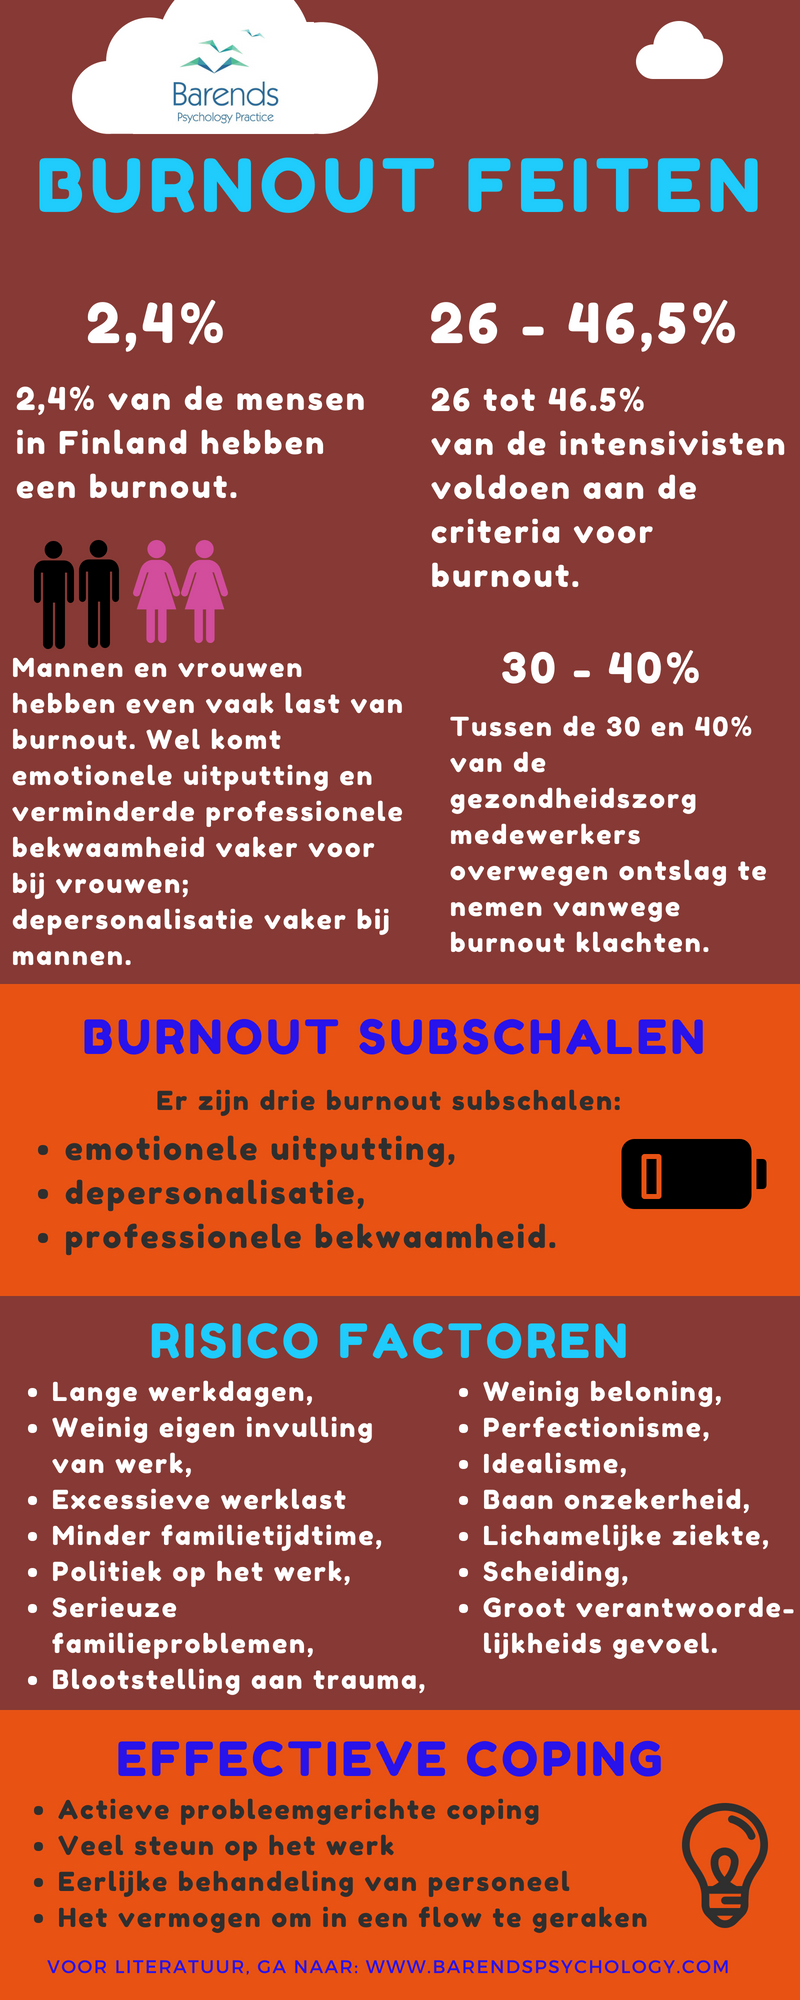 Burnout syndrome: causes, symptoms, prevention and treatment